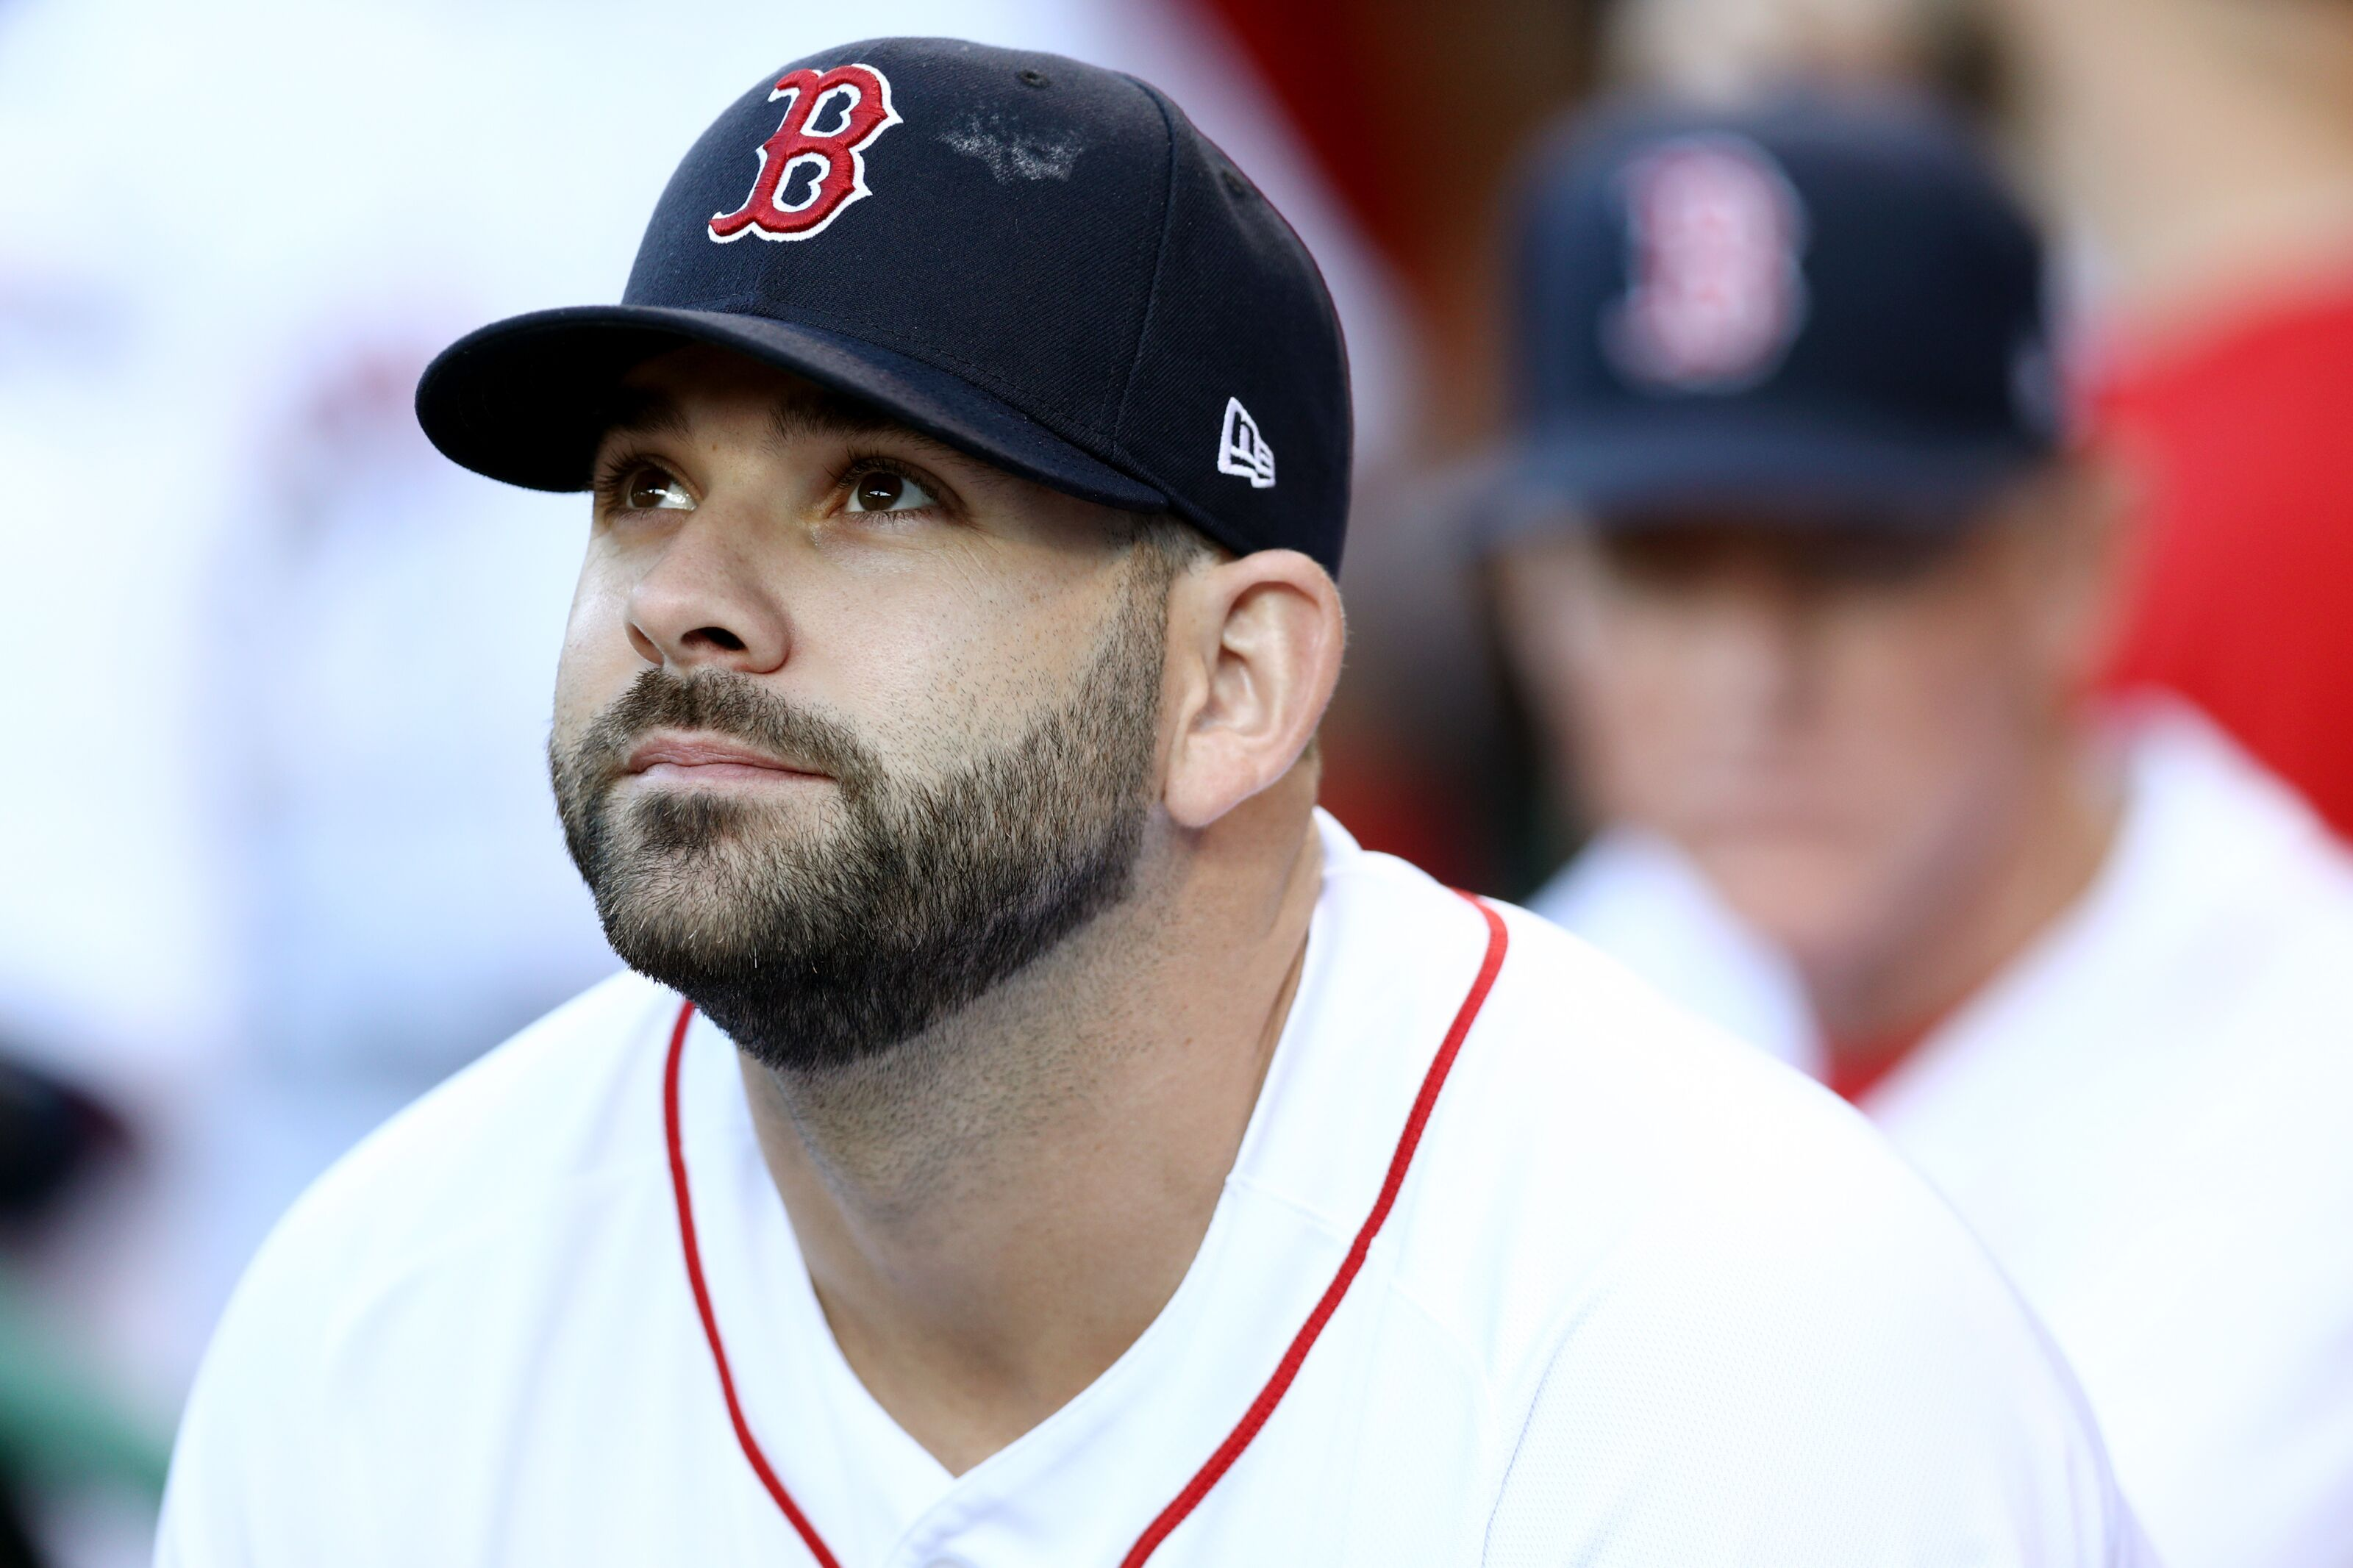 Red Sox made a mistake optioning Marco Hernandez to active Mitch Moreland